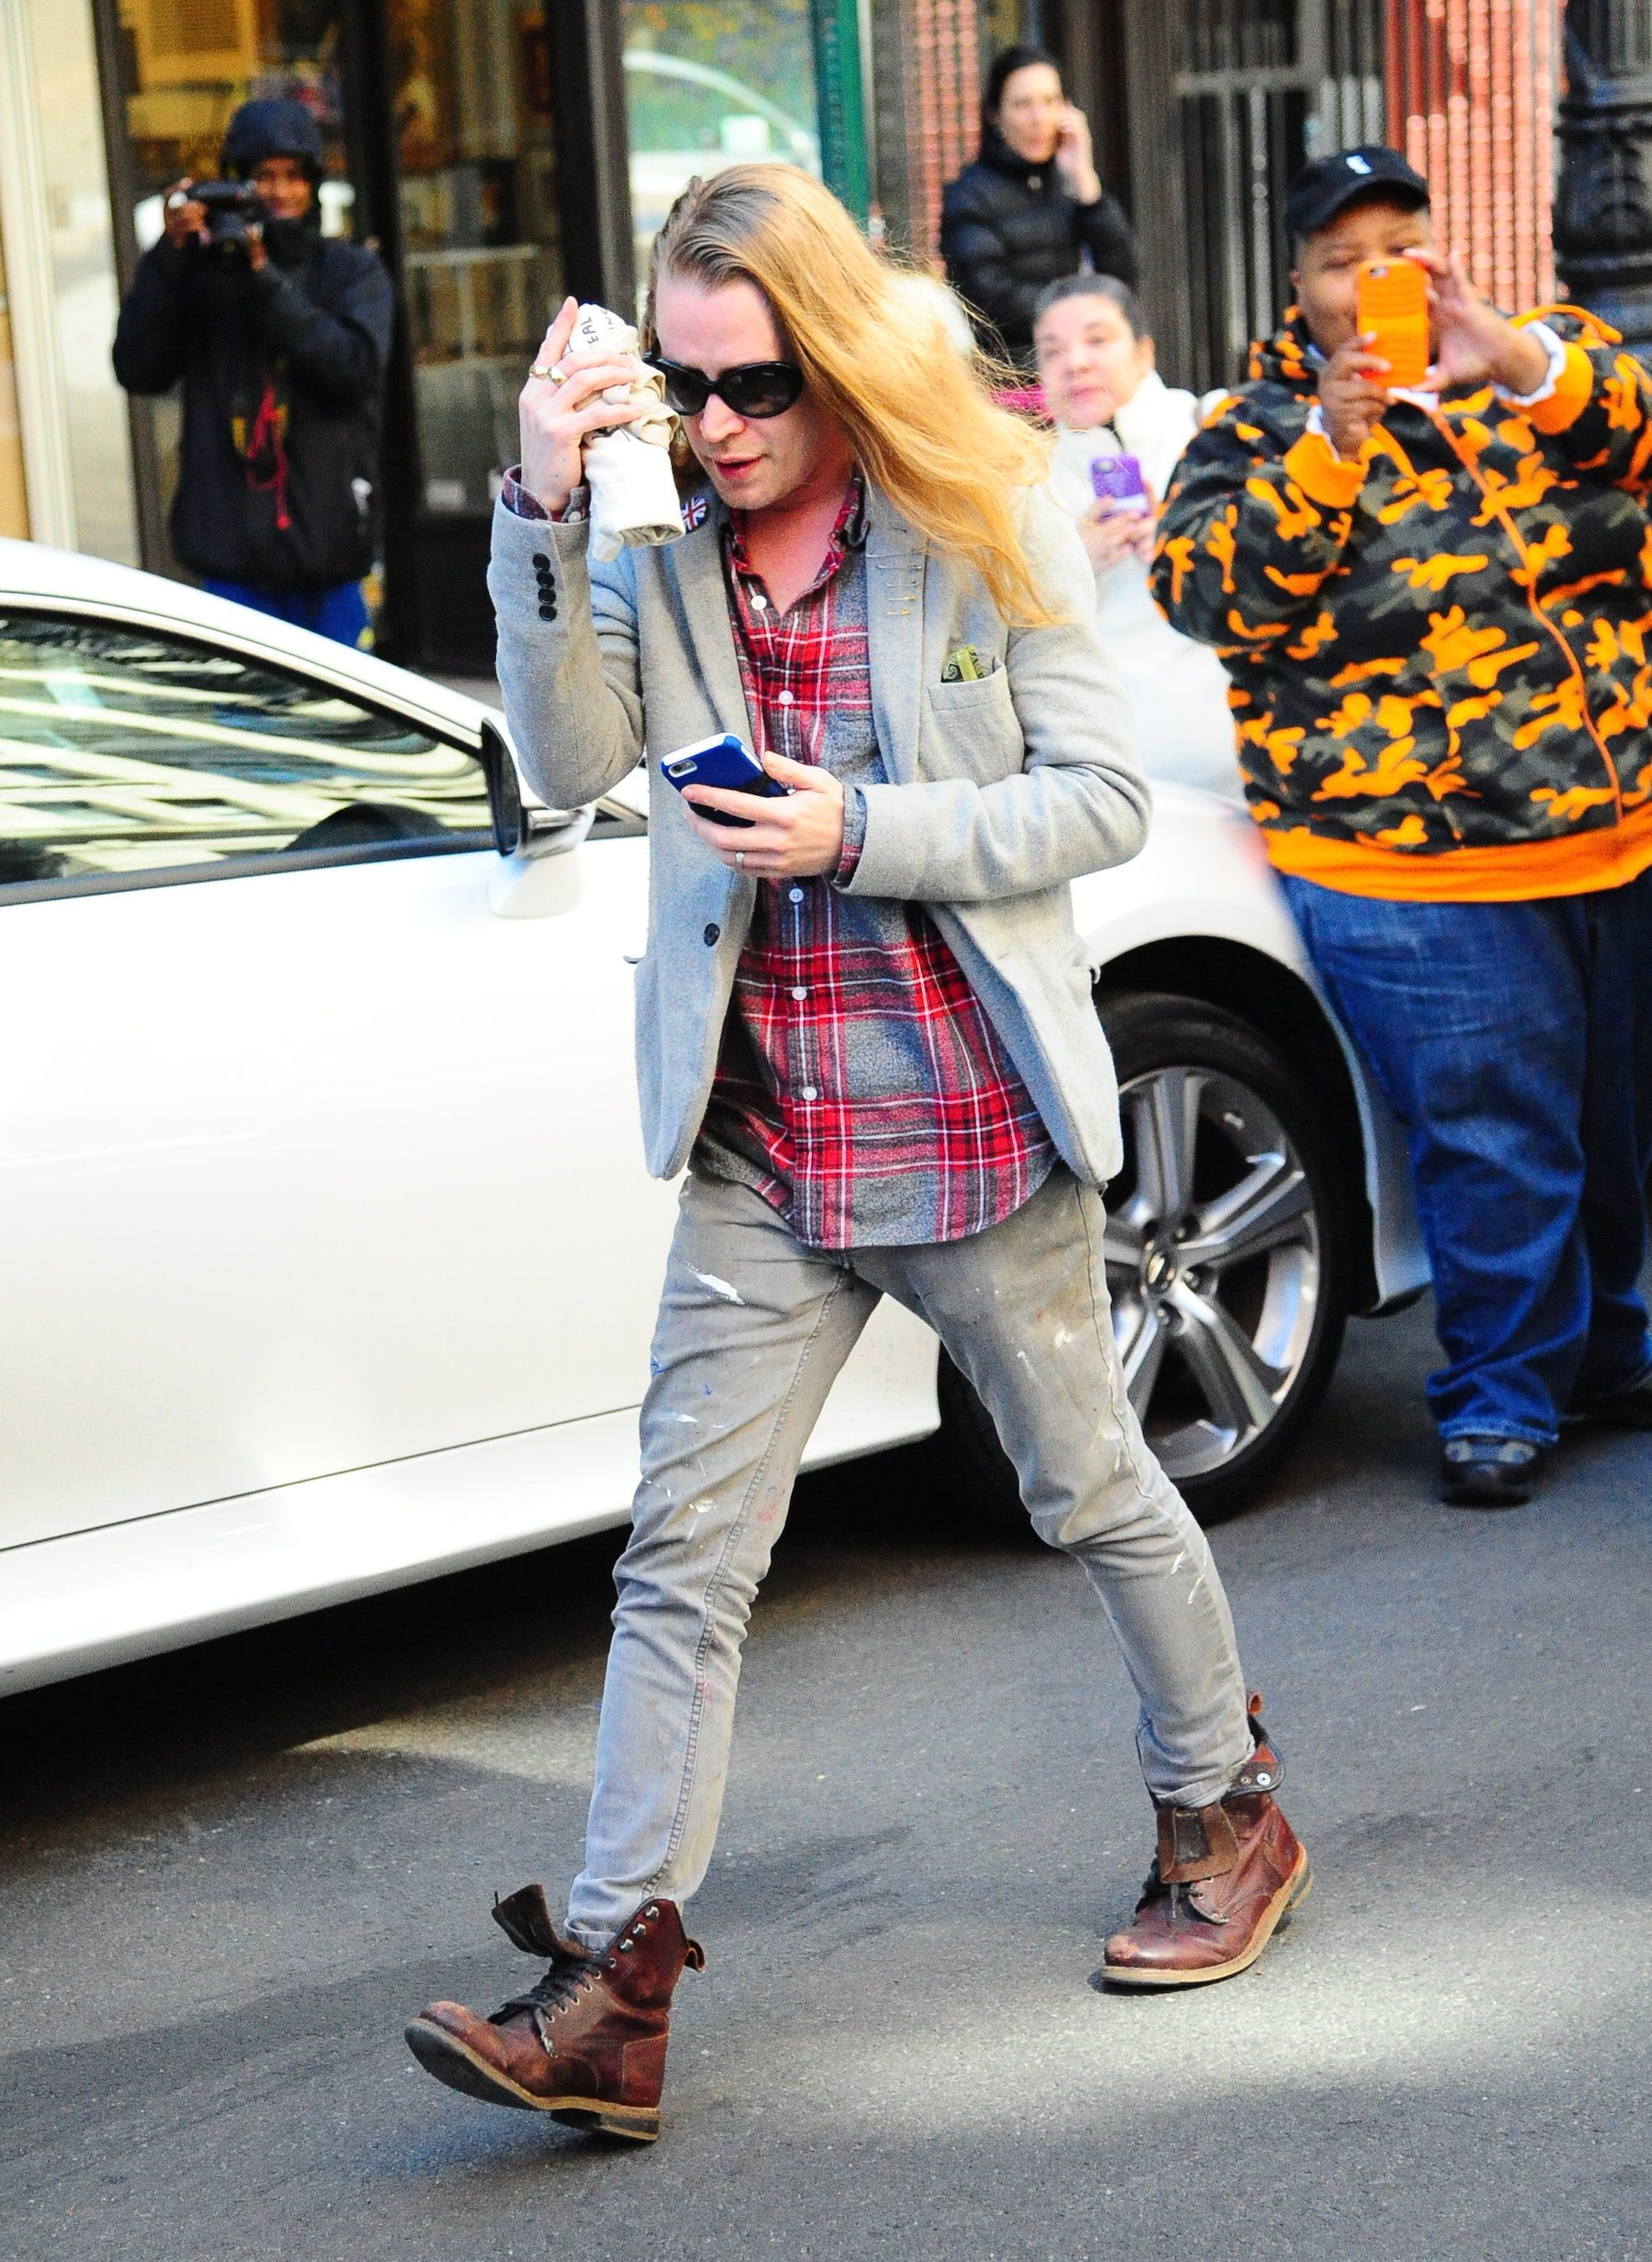 NEW YORK, NEW YORK - MARCH 31:  Actor Macaulay Culkin is seen walking in Soho on March 31, 2016 in New York City.  (Photo by Raymond Hall/GC Images)